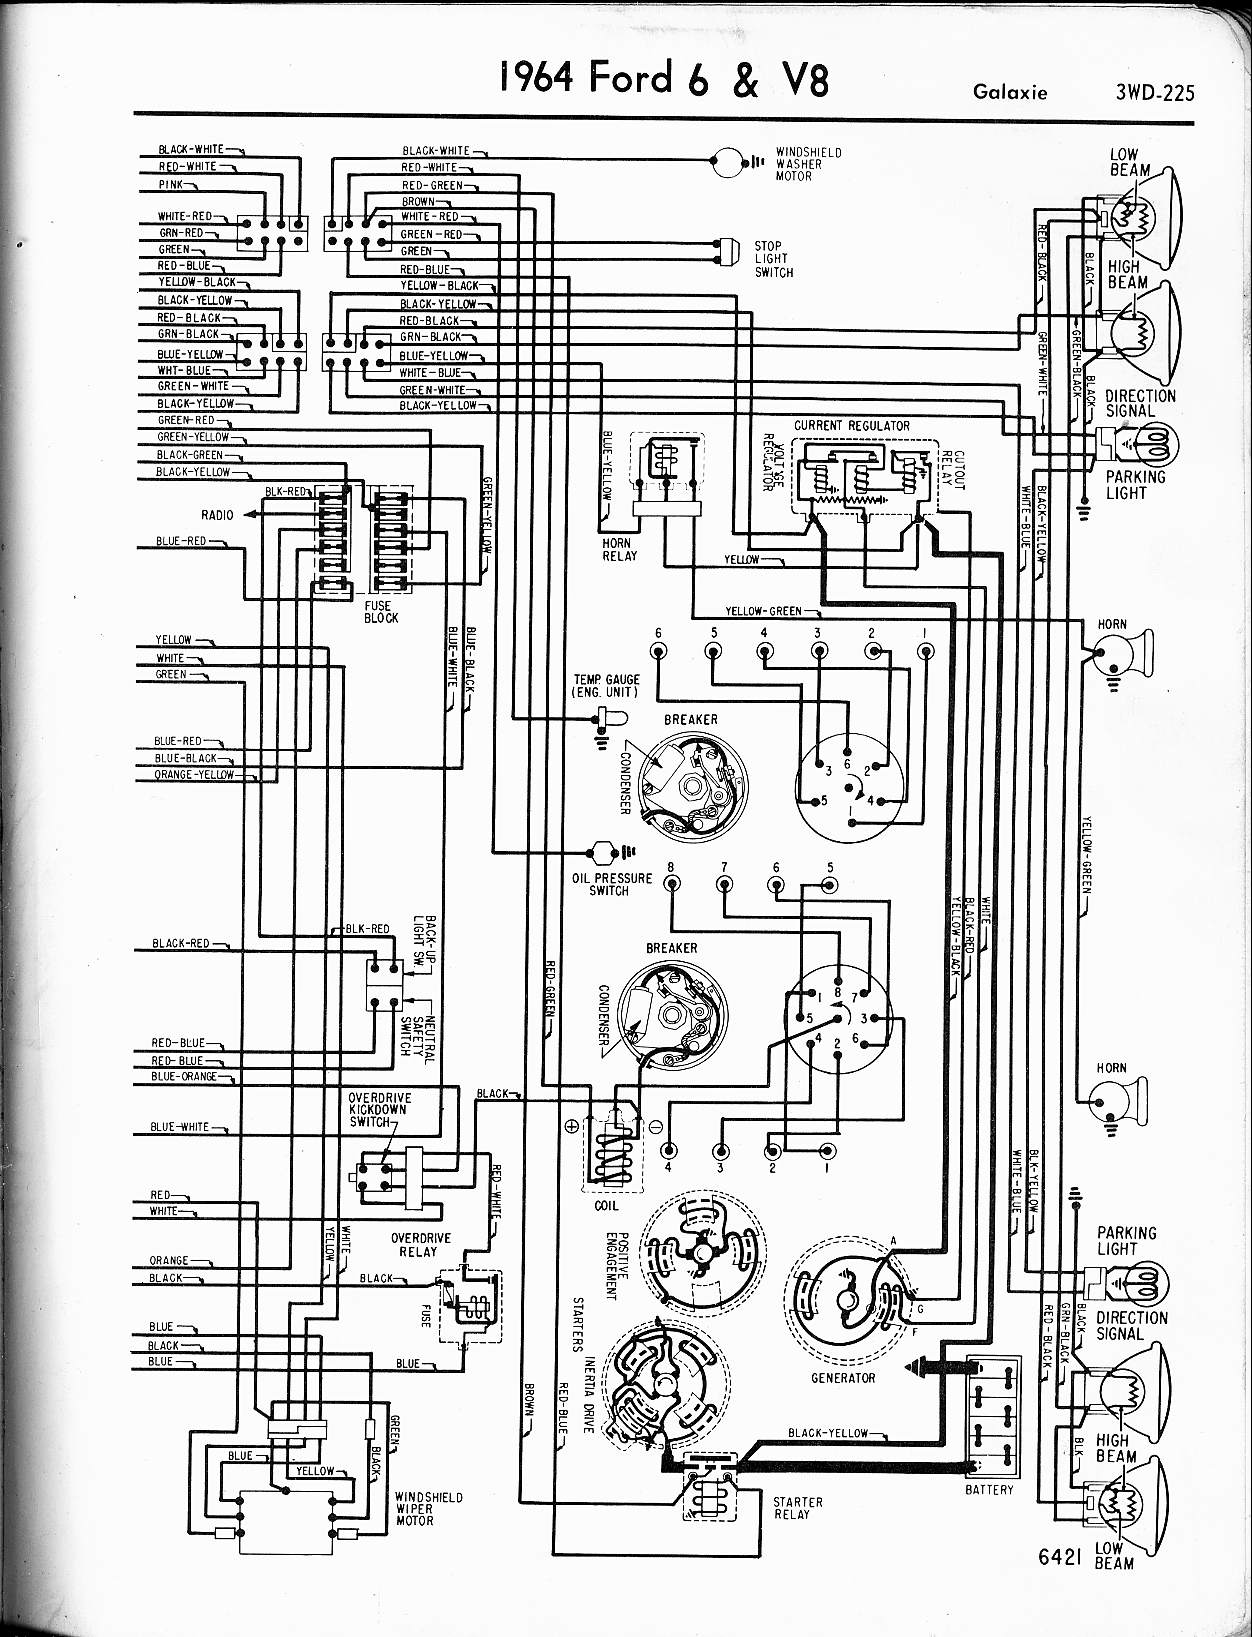 MWire5765 225 64 falcon wiring diagram 64 comet ignition wiring \u2022 wiring proteam 1500xp wiring diagram at readyjetset.co